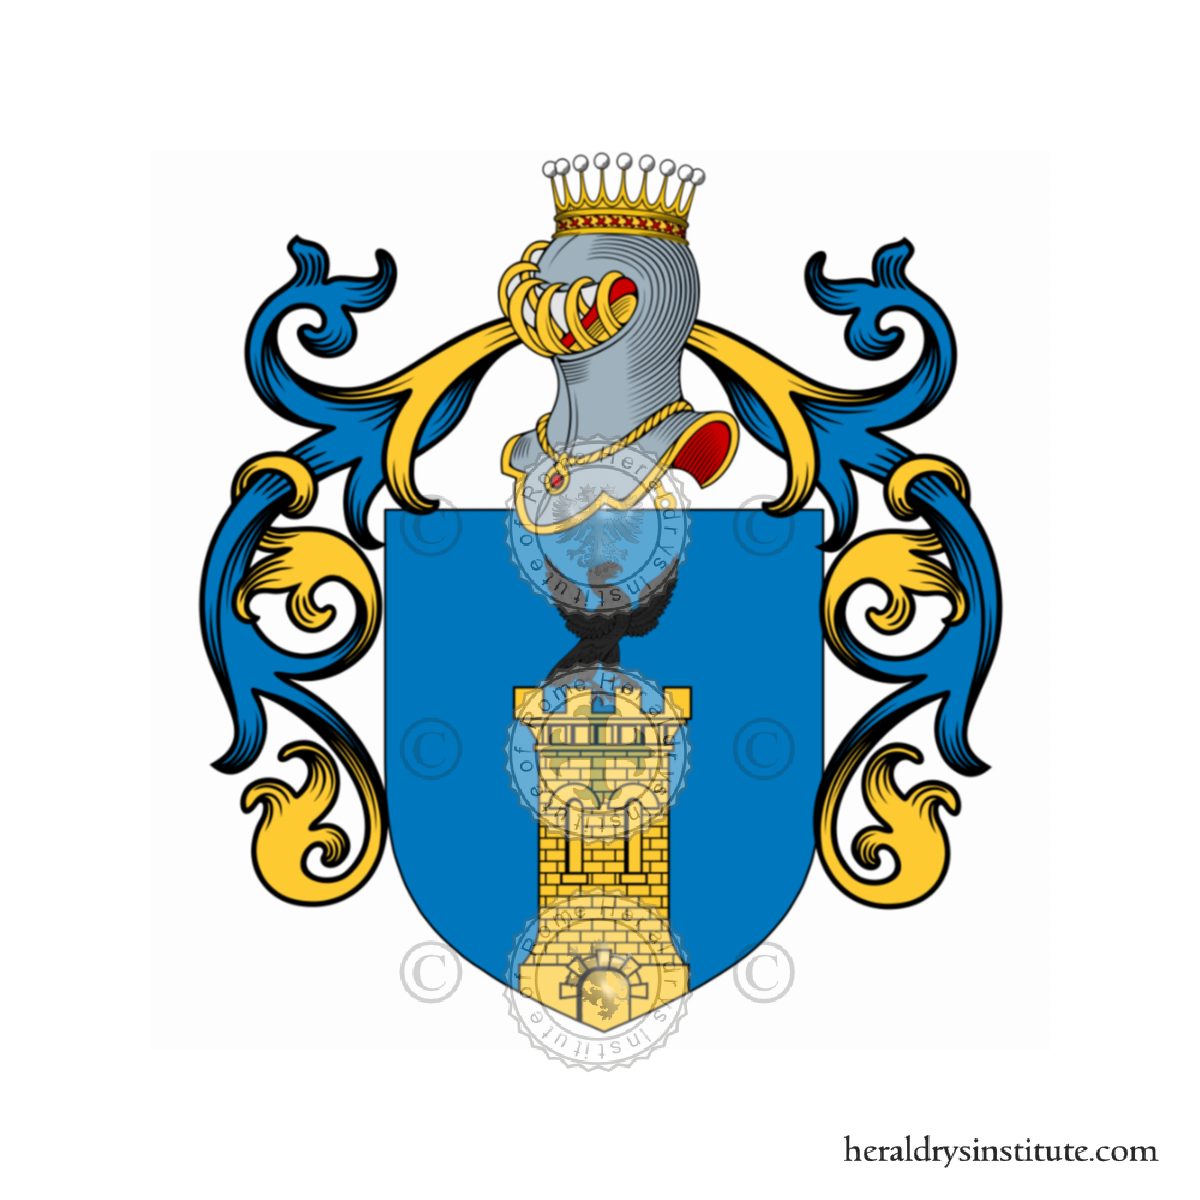 Romanini family heraldry, genealogy, Coat of arms and last name origin